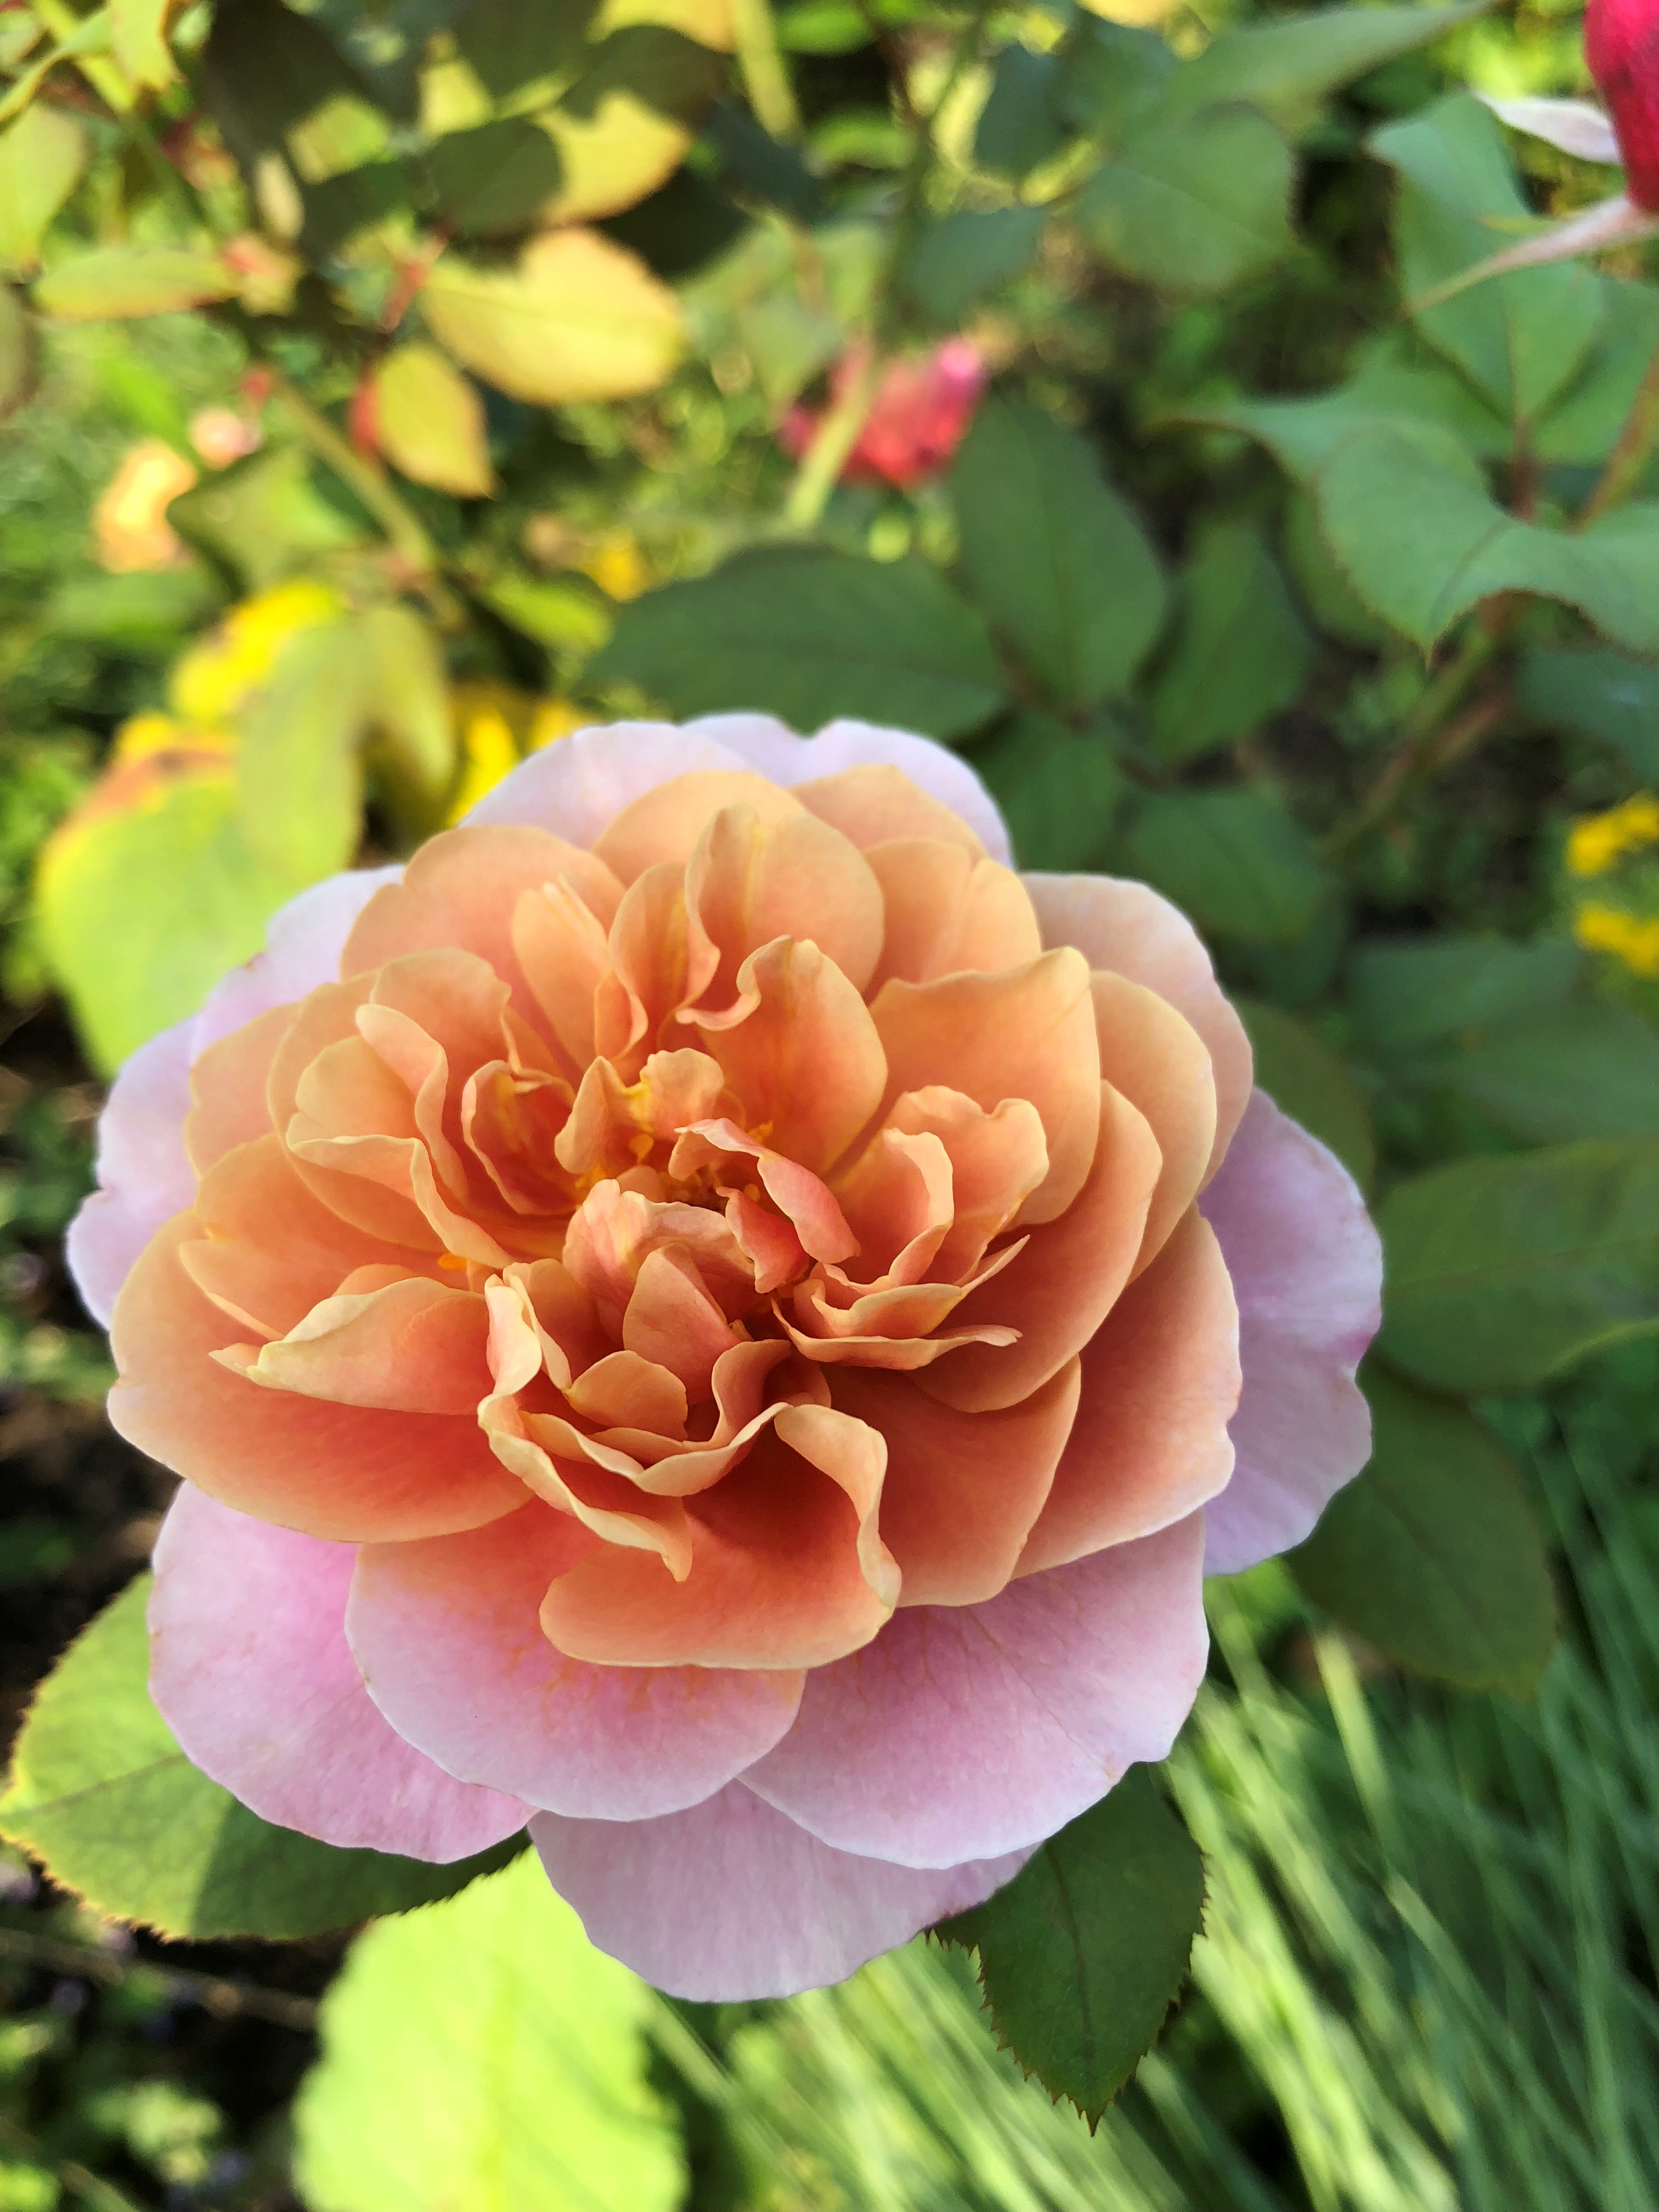 Rose 'Distant Drums' glows peach and mauve in the rose garden. Photo by Leslie Hunter on Aug. 25.